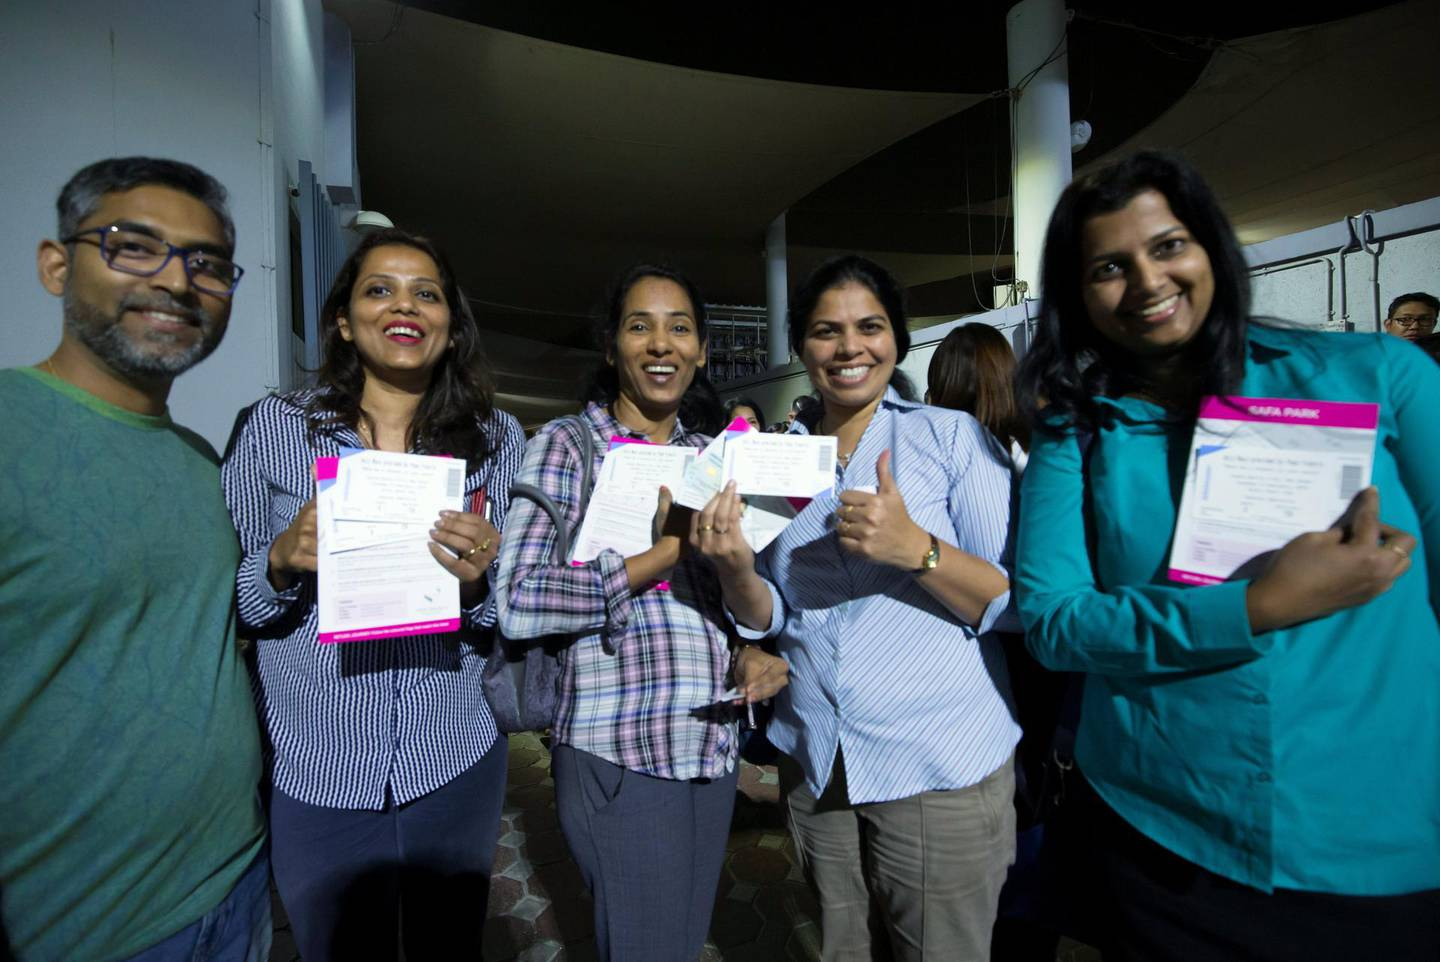 DUBAI, UNITED ARAB EMIRATES -People got their tickets at St. Mary's Catholic Church, Oud Mehta.  Leslie Pableo for The National for Patrick Ryan's story